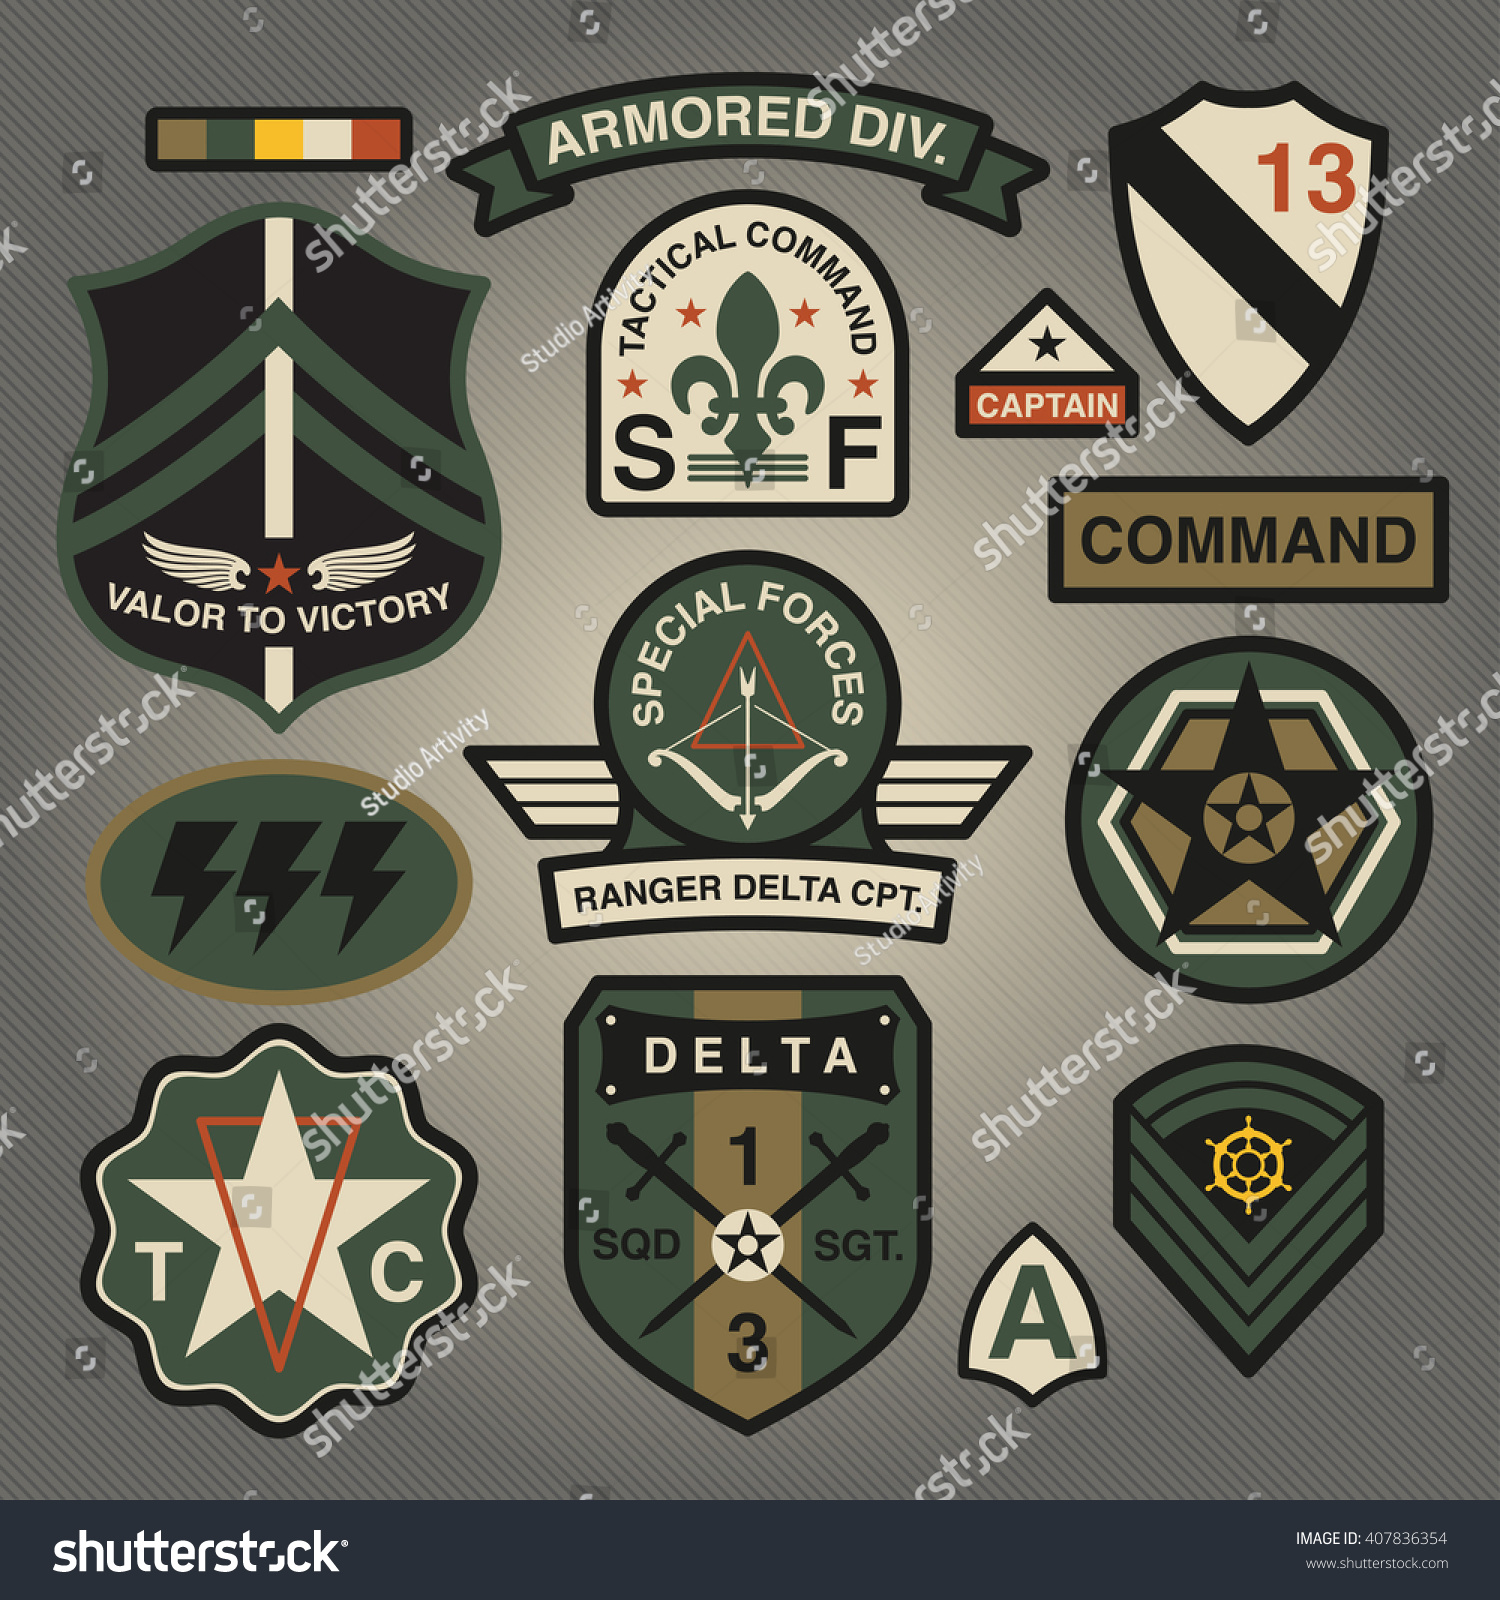 military badges and patches in Collectible International